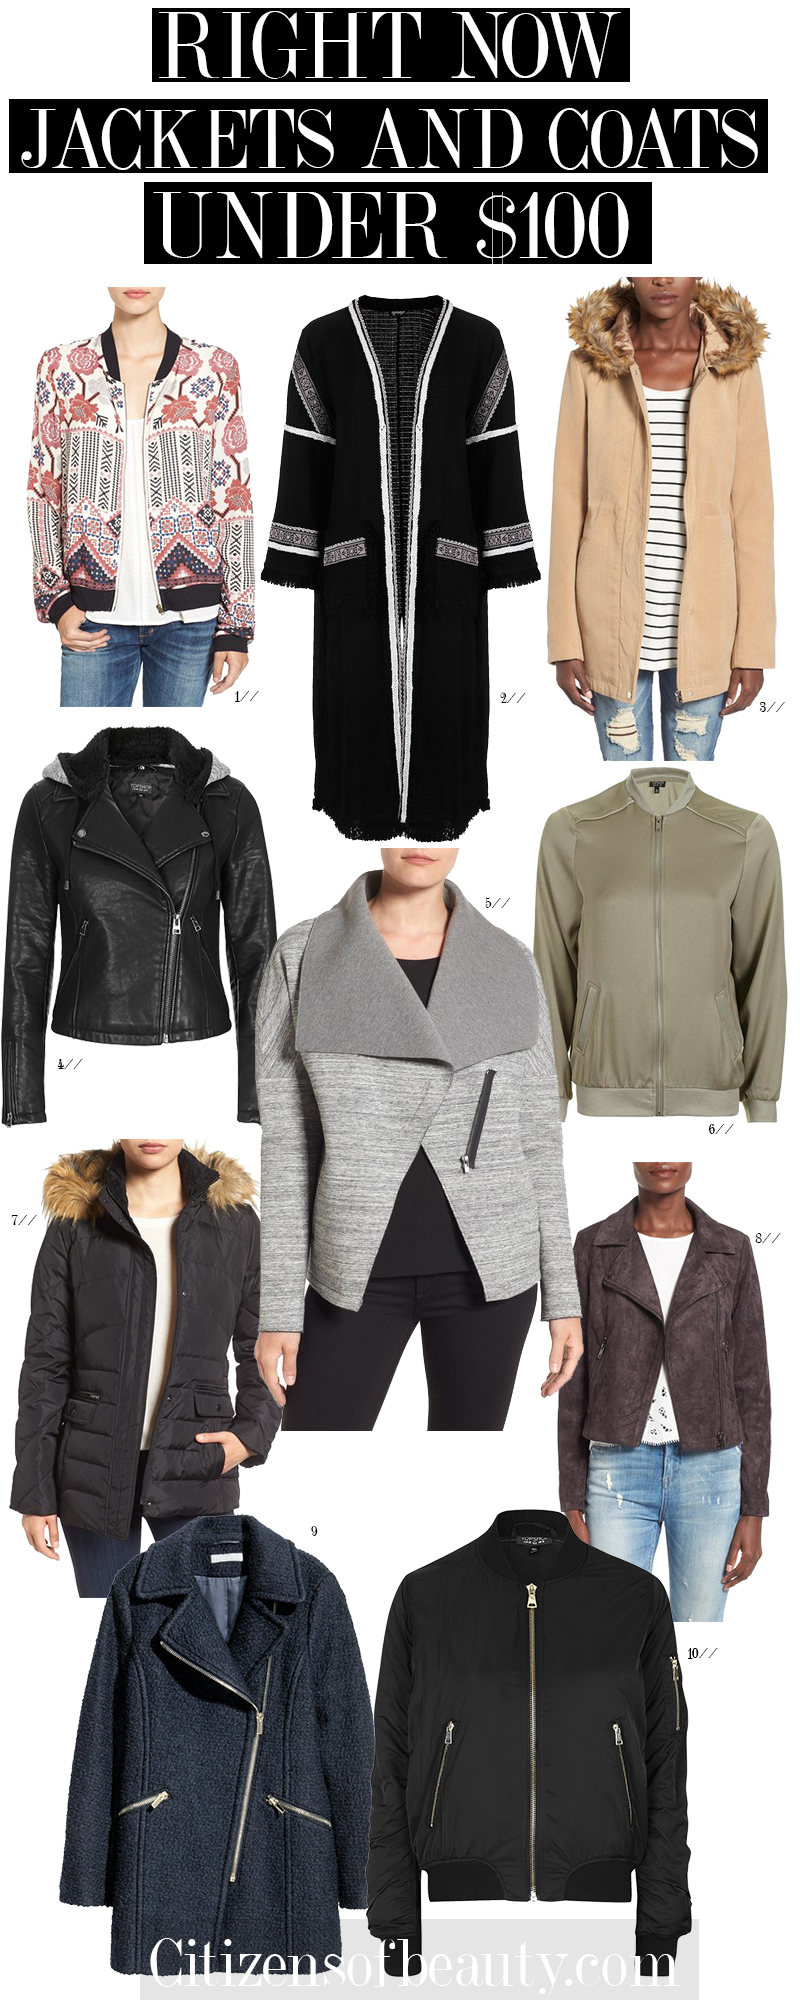 Shop the top jackets and coats that are popular right now!